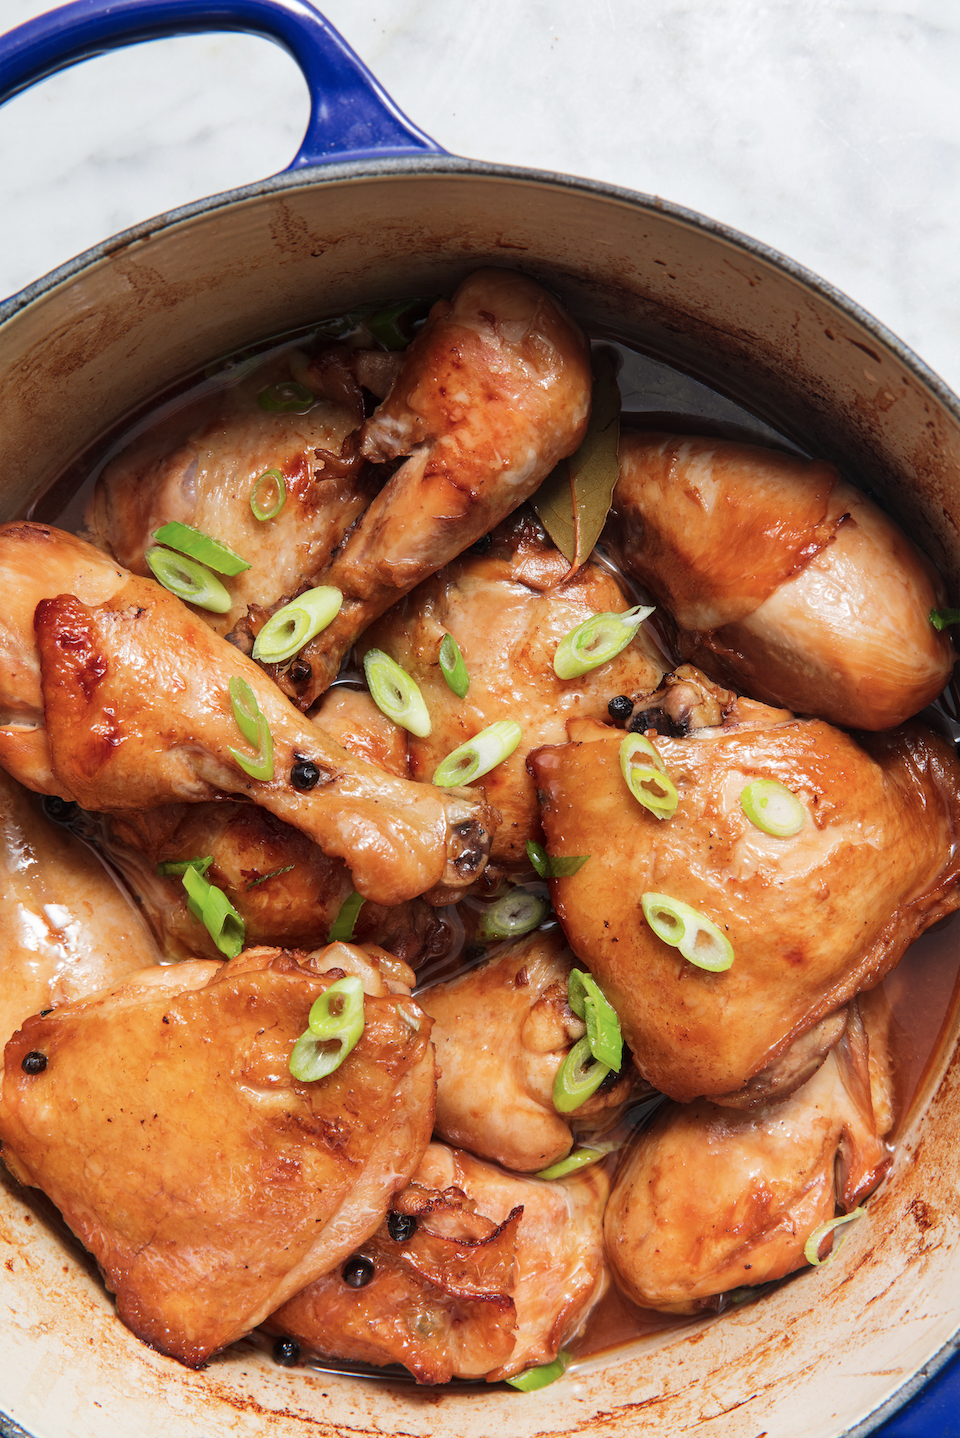 """<p>Braise away. </p><p>Get the recipe from <a href=""""https://www.delish.com/cooking/recipe-ideas/a20079316/fillipino-chicken-adobo-recipe/"""" rel=""""nofollow noopener"""" target=""""_blank"""" data-ylk=""""slk:Delish"""" class=""""link rapid-noclick-resp"""">Delish</a>.</p>"""